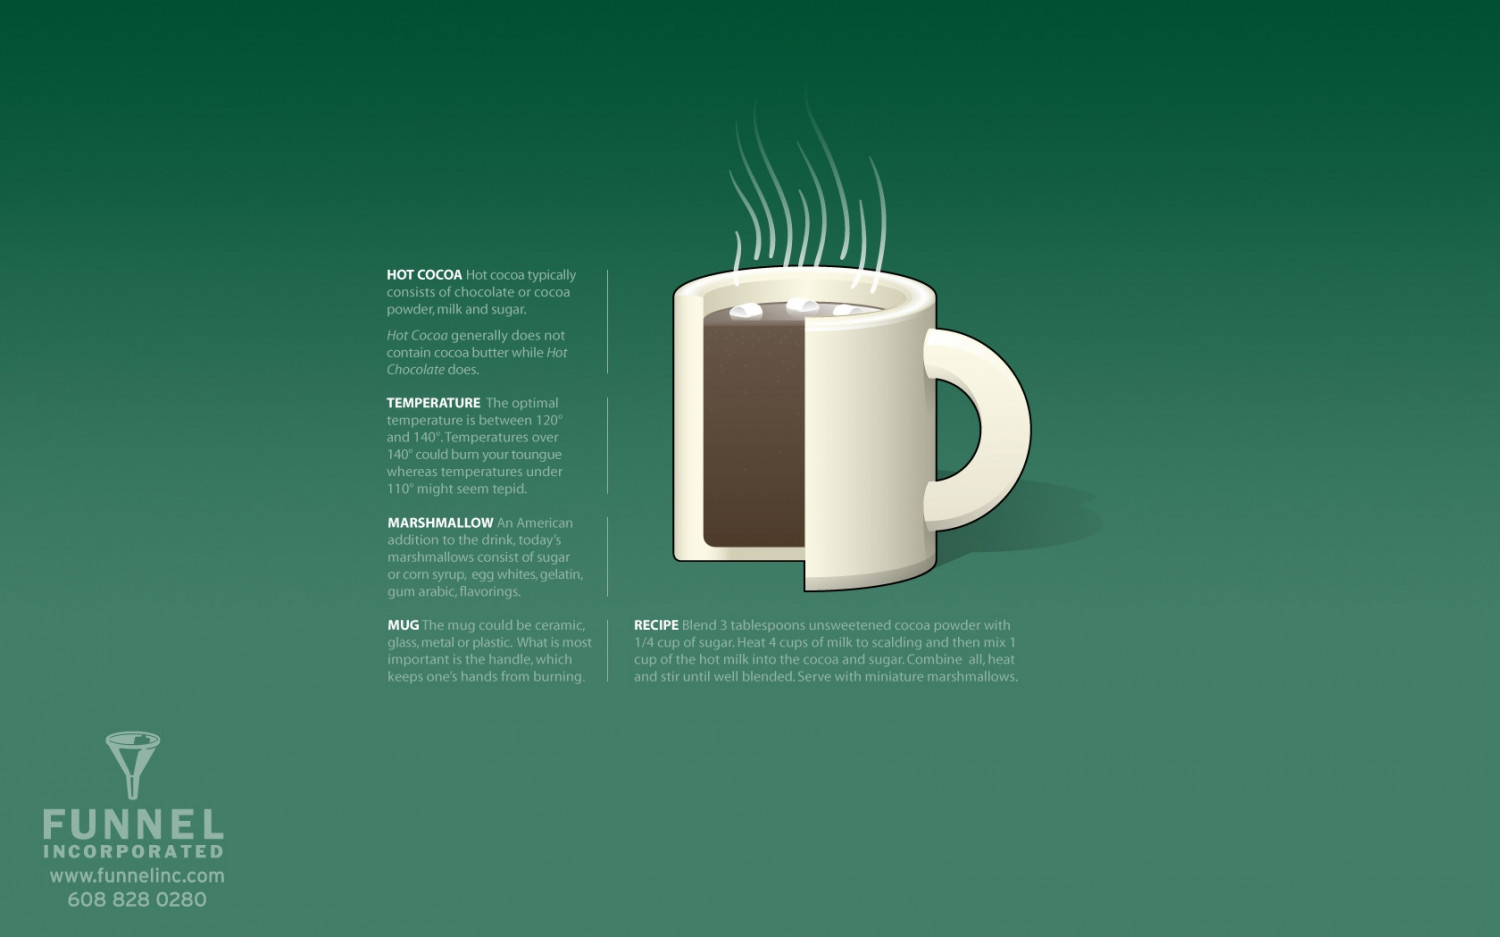 The Perfect Cup of Hot Cocoa Infographic